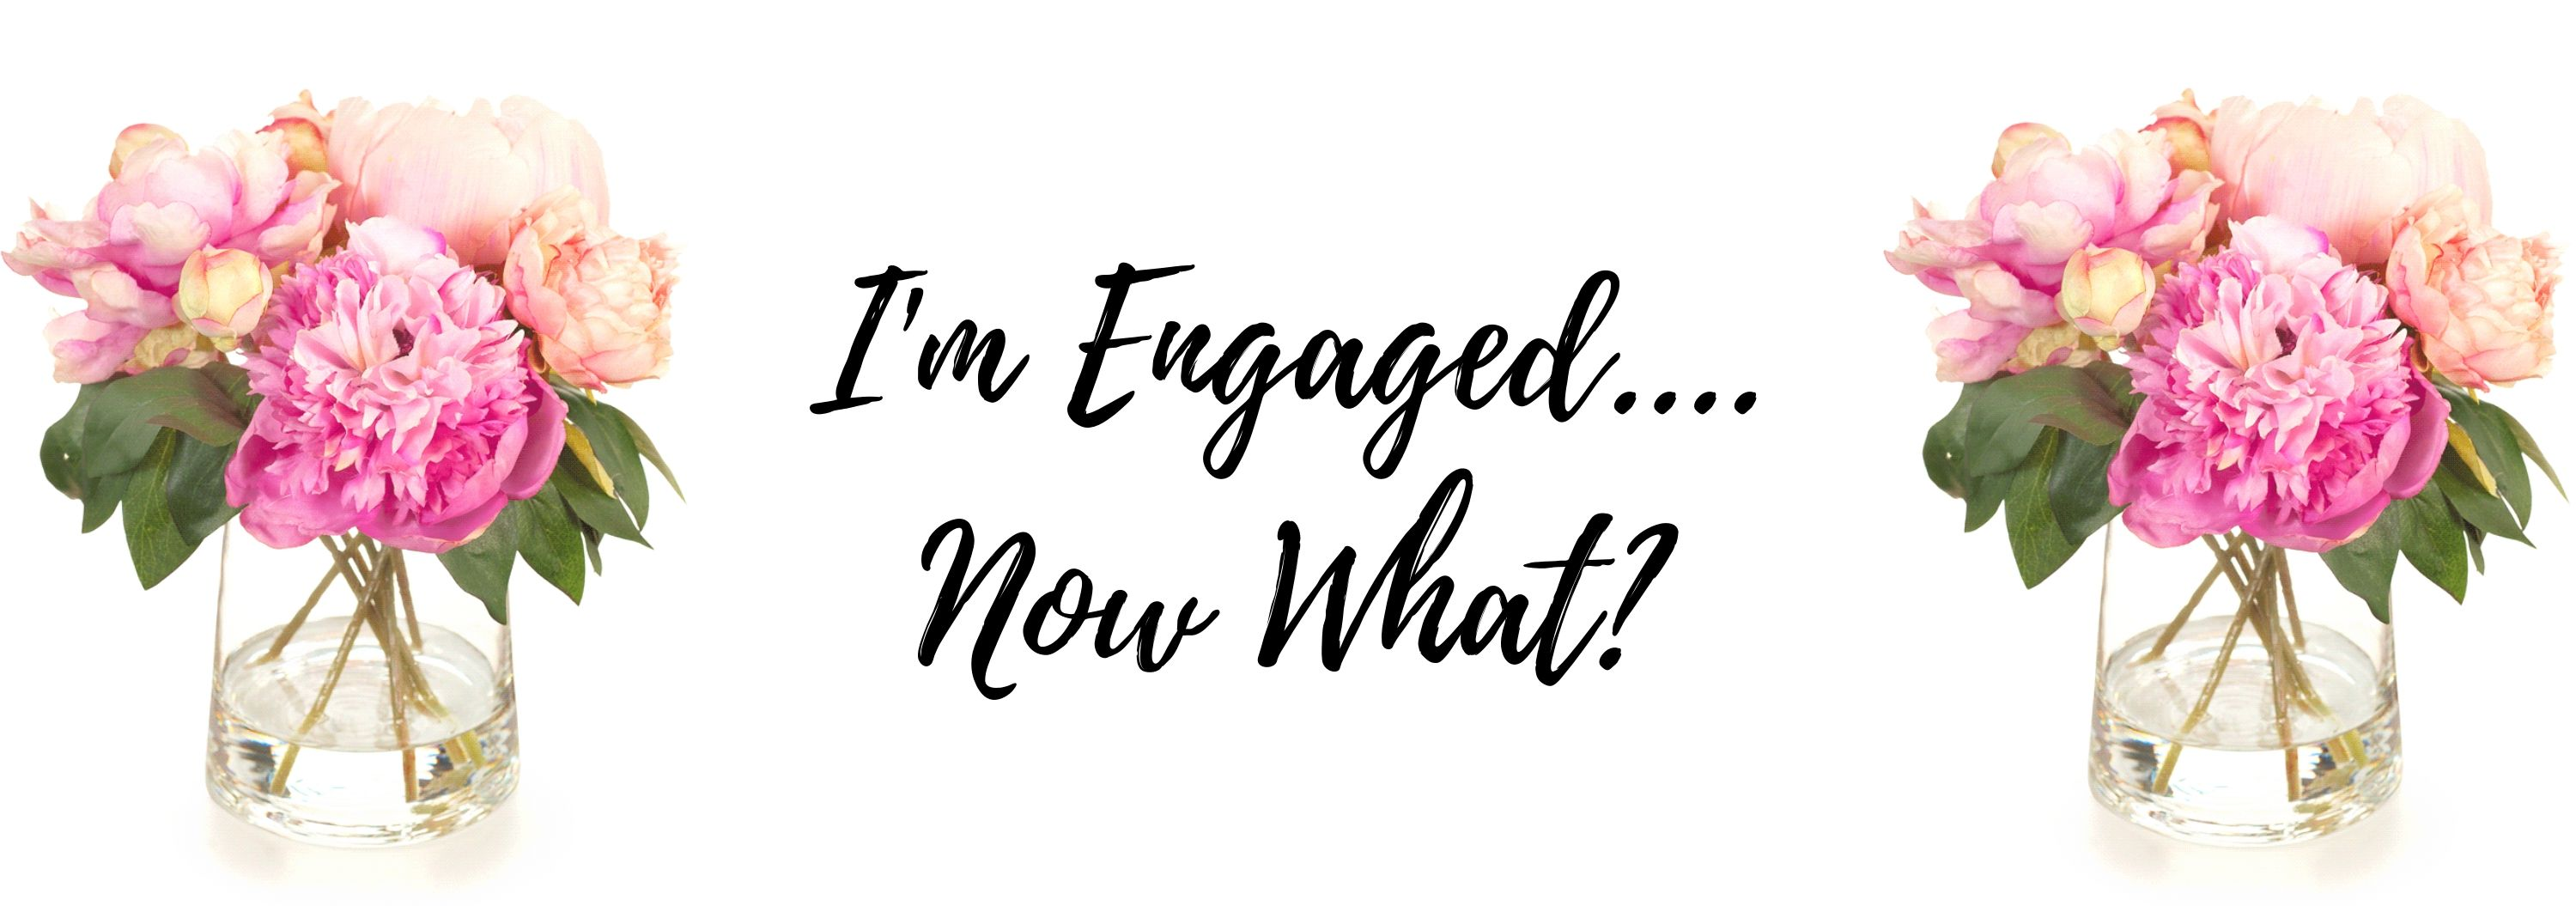 I'M ENGAGED, NOW WHAT?!